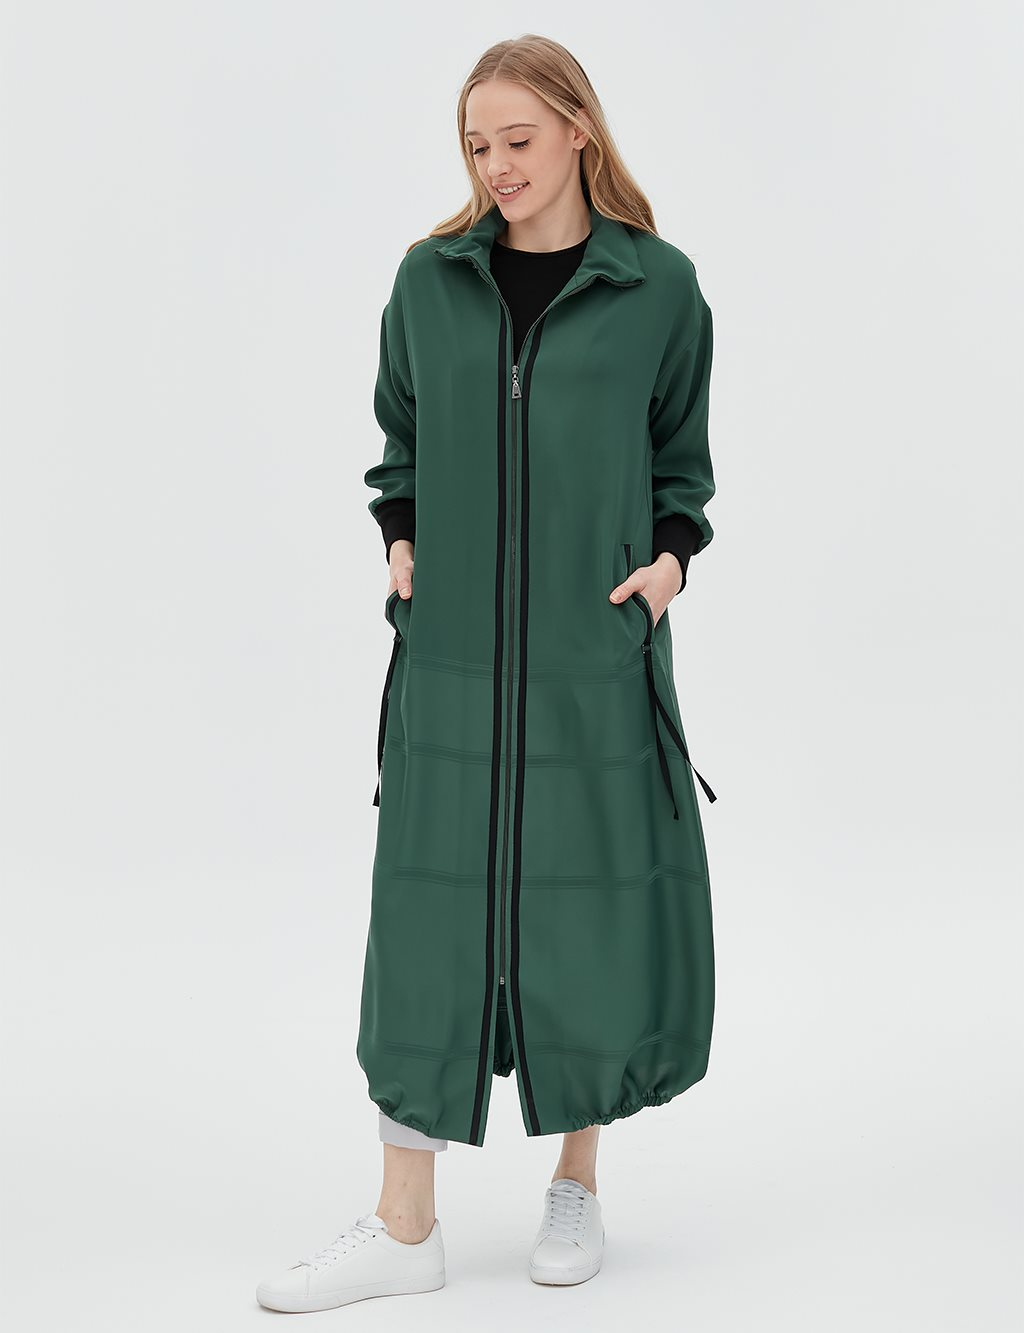 Stripe Detailed Overcoat B20 25011 Green